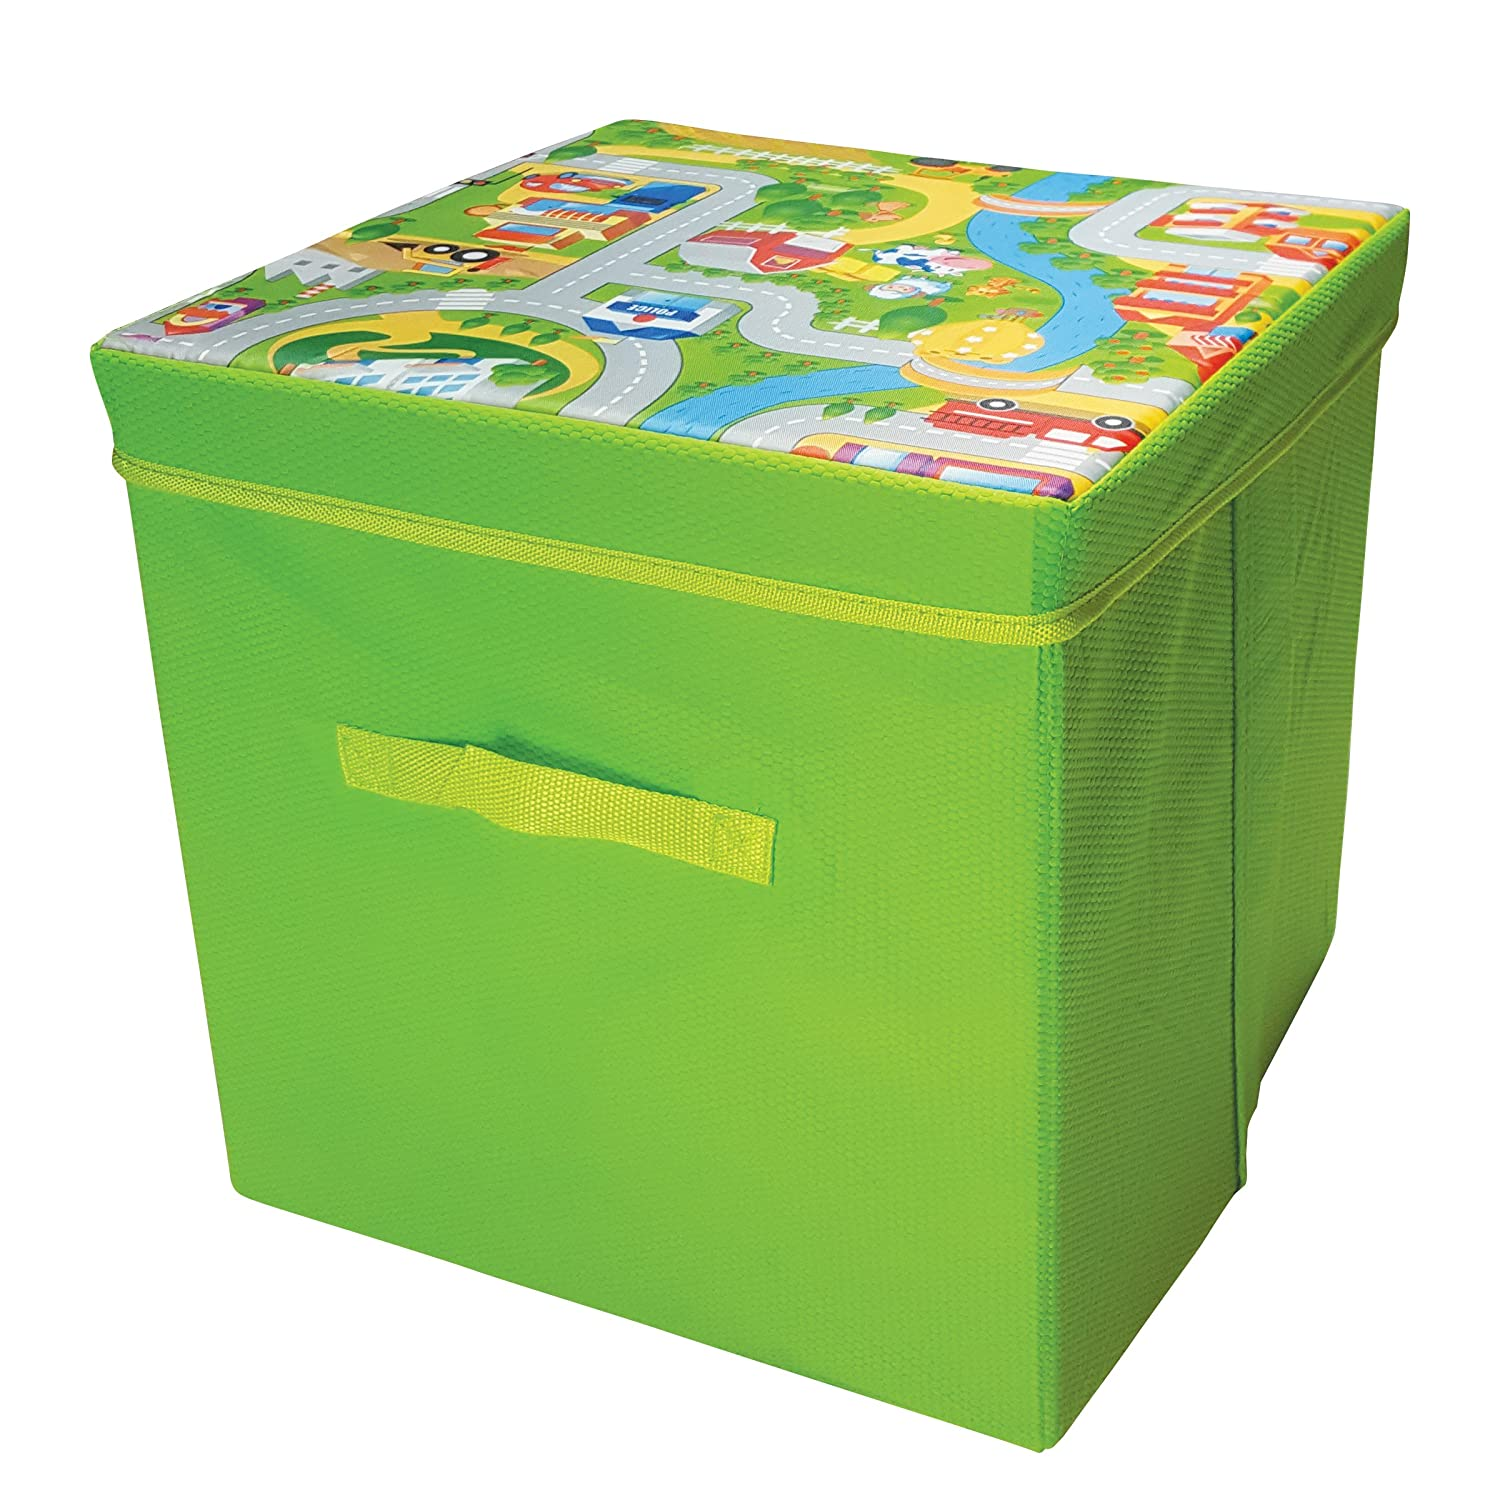 Snoozy Road Map Storage Box And Play Mat Fiberlinks Textiles Inc